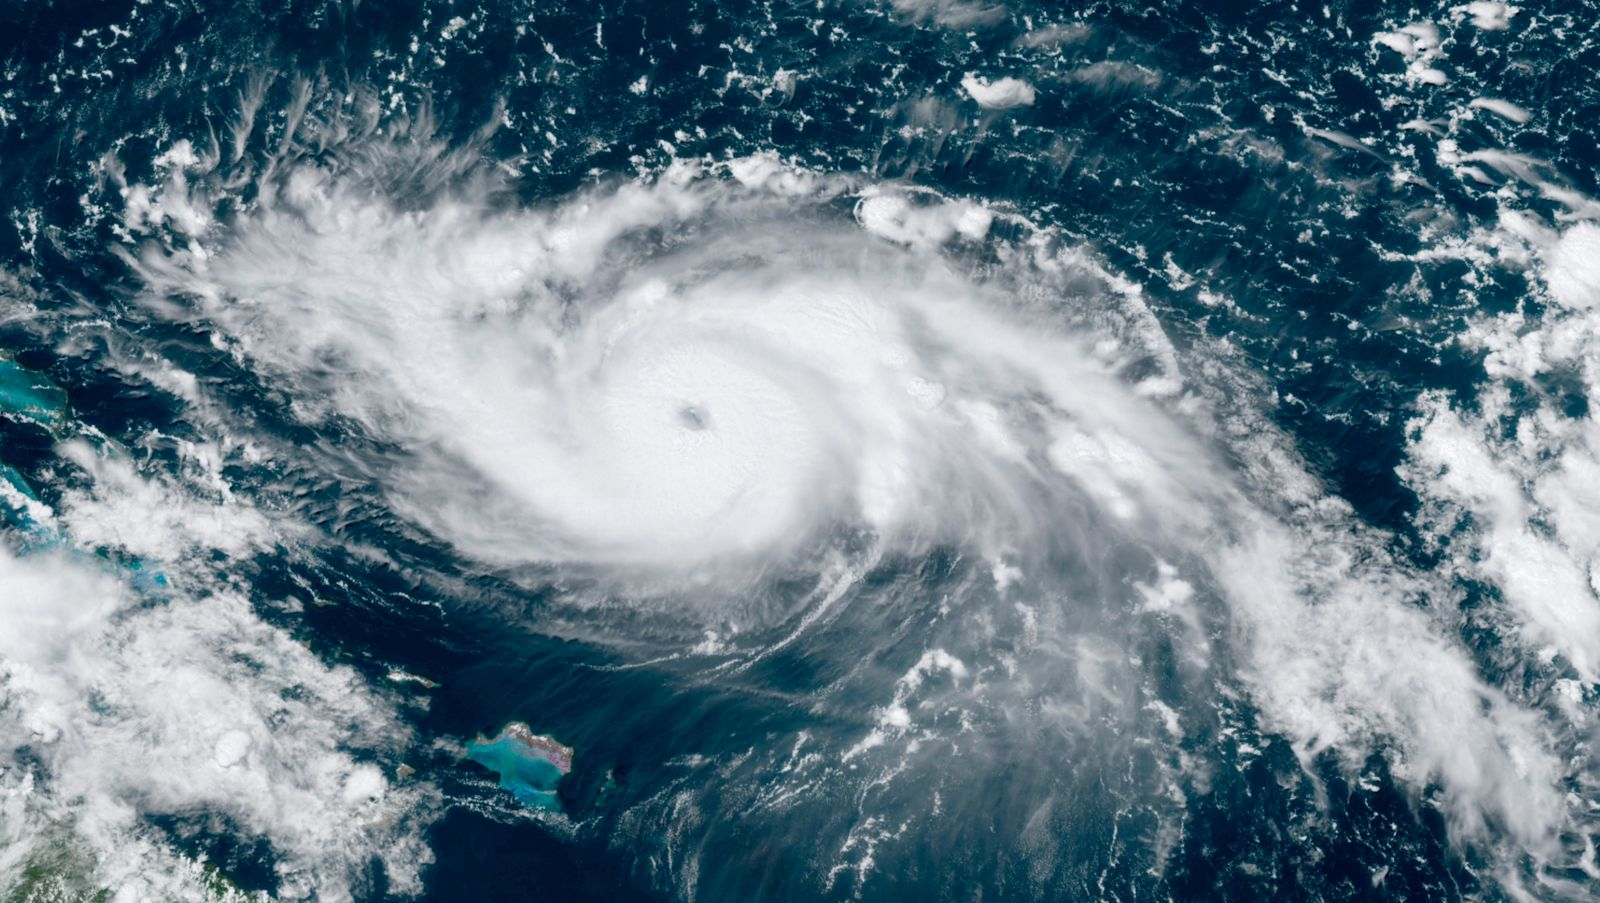 This GOES-16 satellite image taken Friday, Aug. 30, 2019, at 17:30 UTC and provided by National Oceanic and Atmospheric Administration (NOAA), shows Hurricane Dorian, right, moving over open waters in the Atlantic Ocean. Forecasters are now saying Dorian could be a Category 4 with winds of nearly 140 mph (225 kph) when it is forecasted to hit Florida late Monday or early Tuesday. It's also imperiling the Bahamas, where the storm is expected to hit by Sunday. (NOAA via AP)